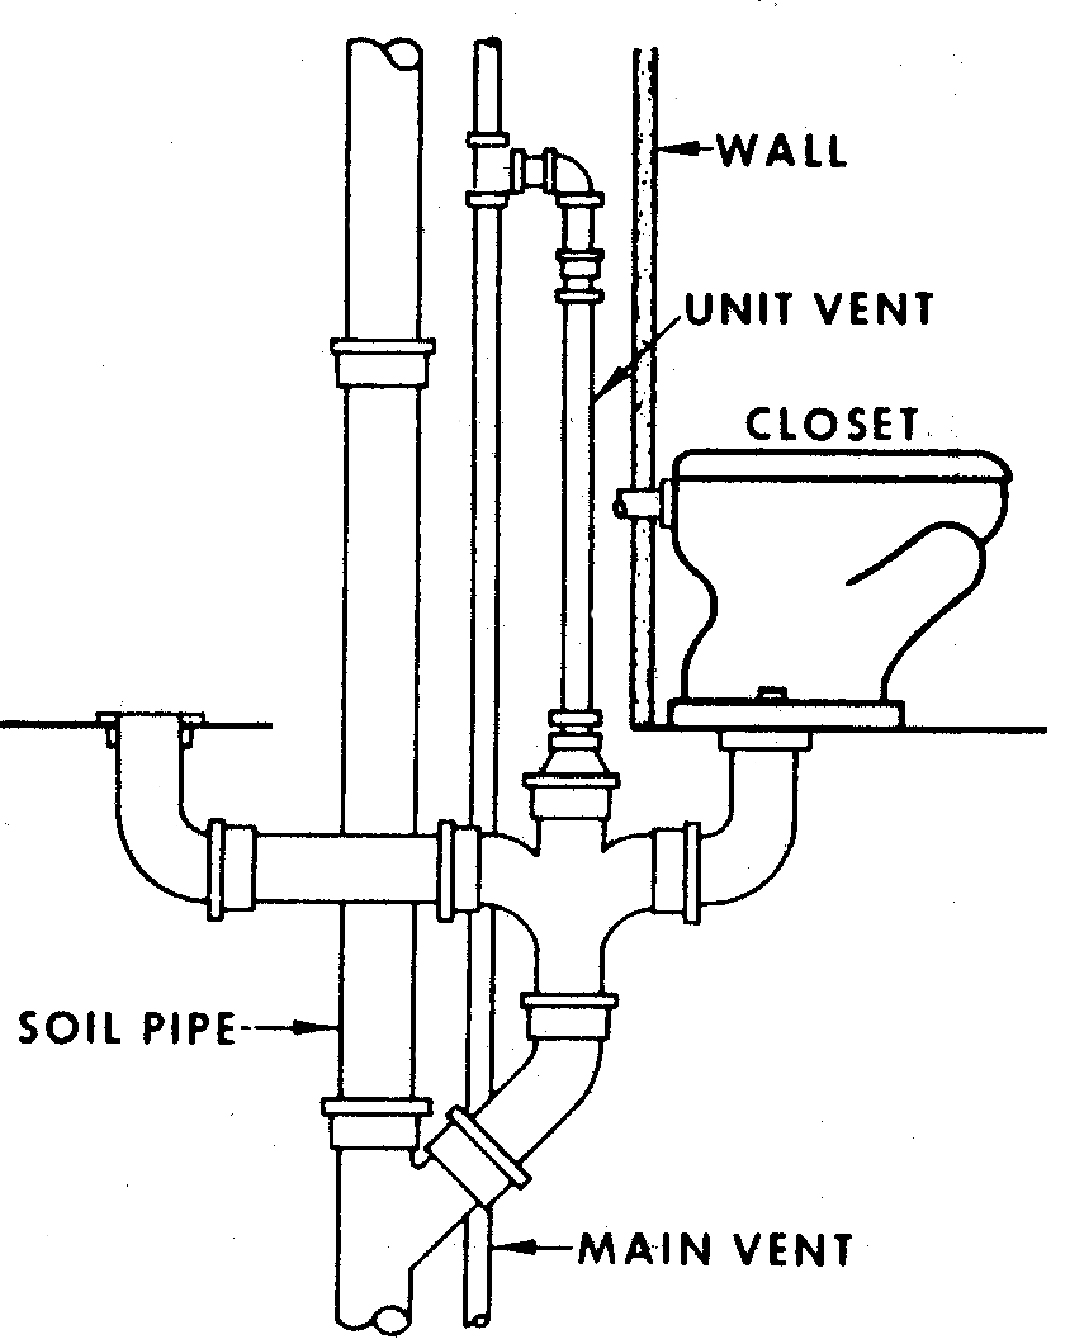 Urinal Plumbing Diagram